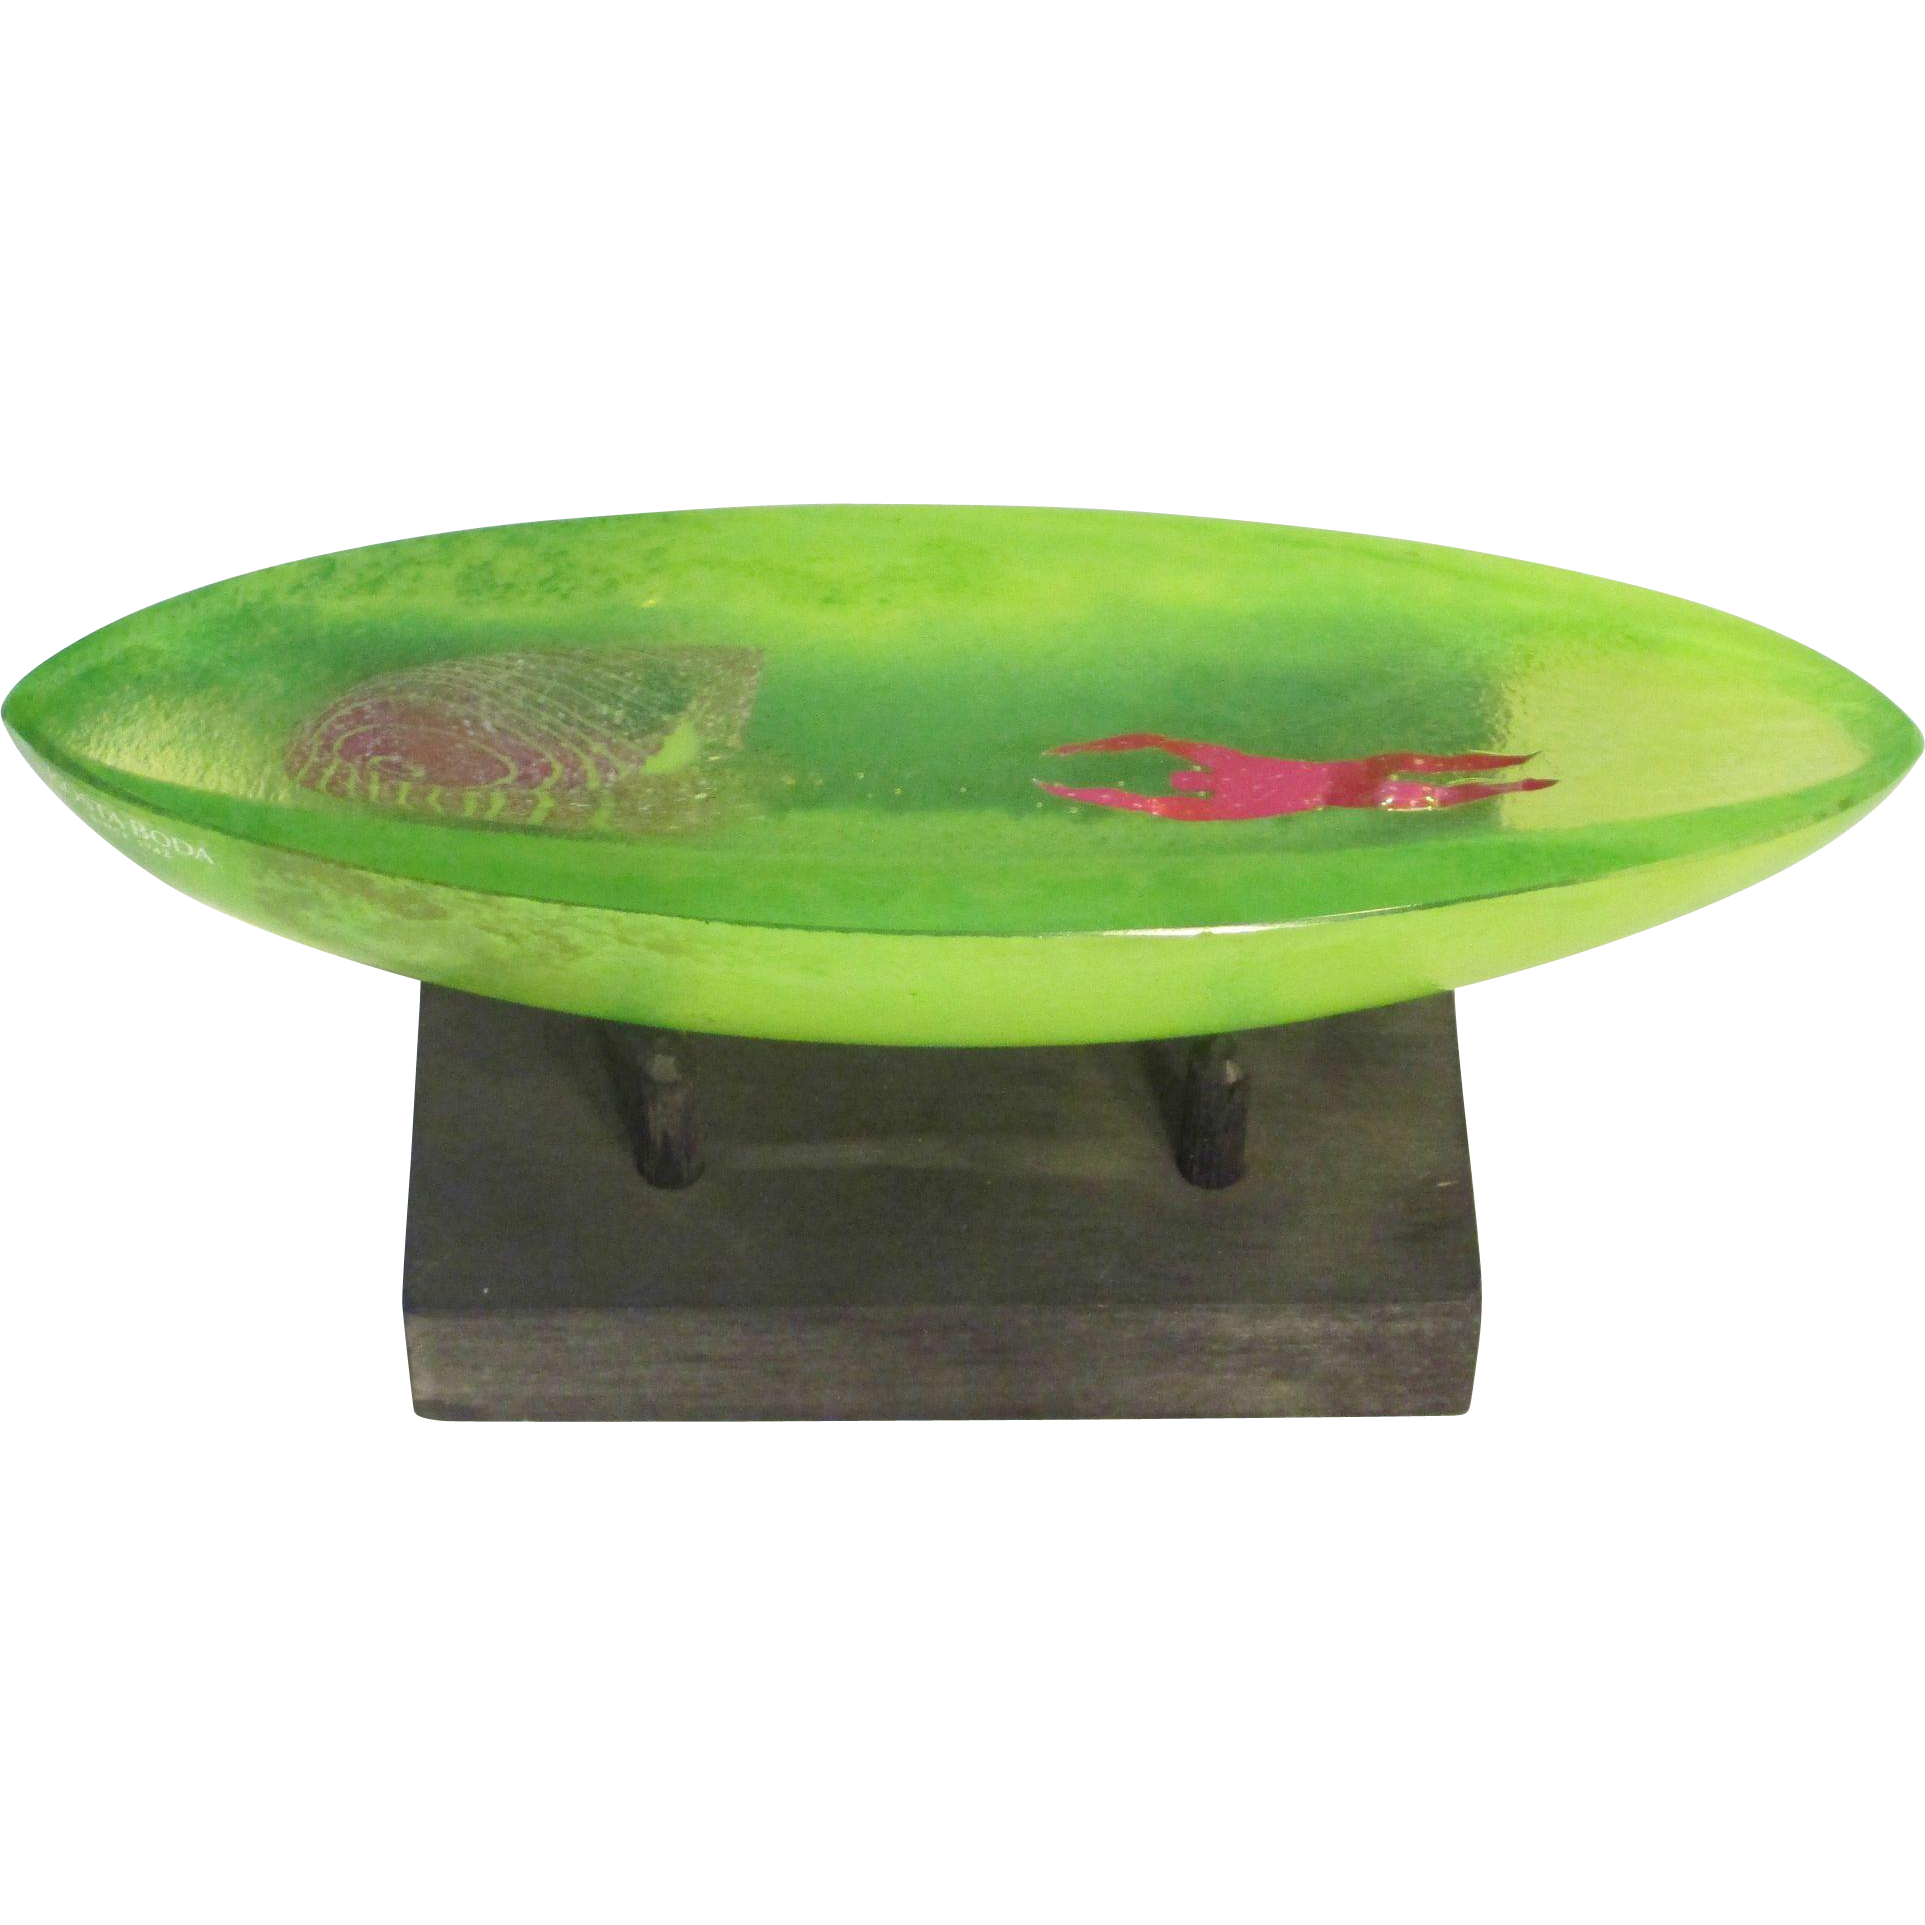 Bertil Vallien Art Glass Green Boat with Figure, Stand Incl, from Kosta Boda Gallery, Ltd Ed.